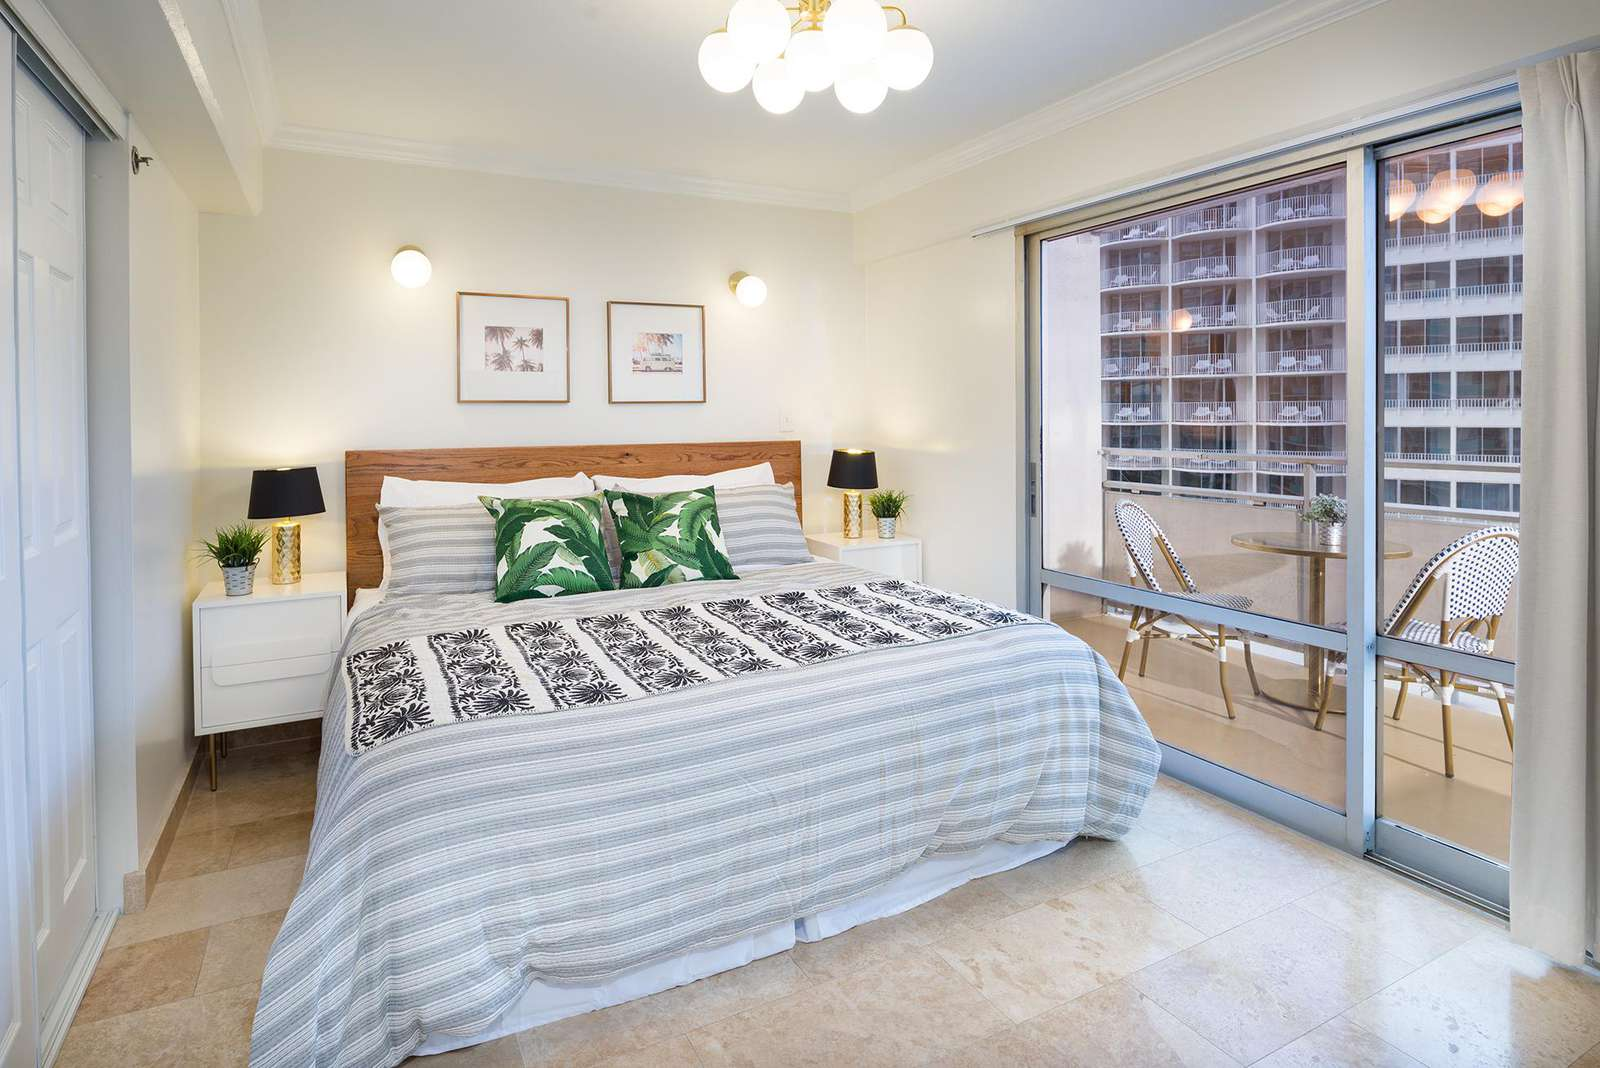 Main bedroom with king size bed and lanai/balcony access